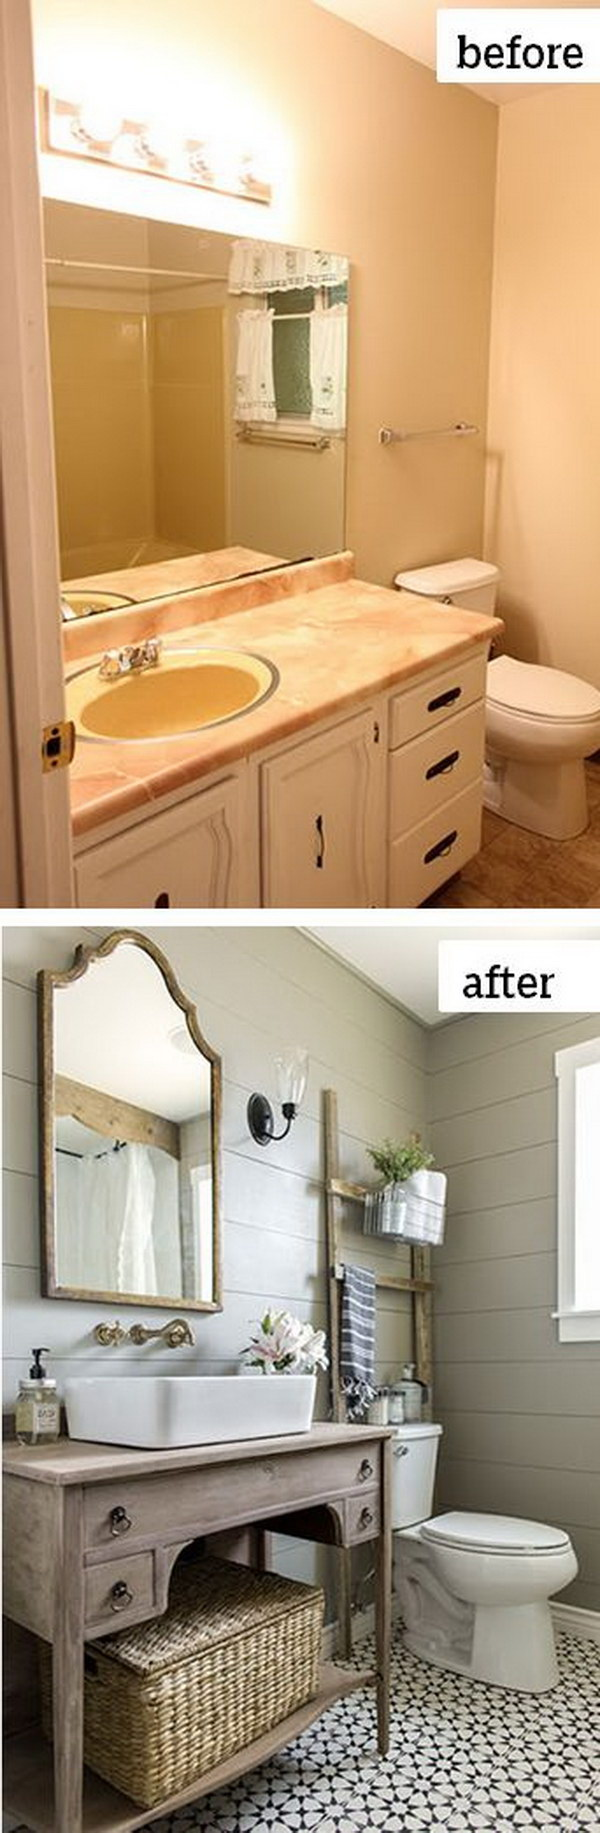 1-bathroom-remodeling-ideas